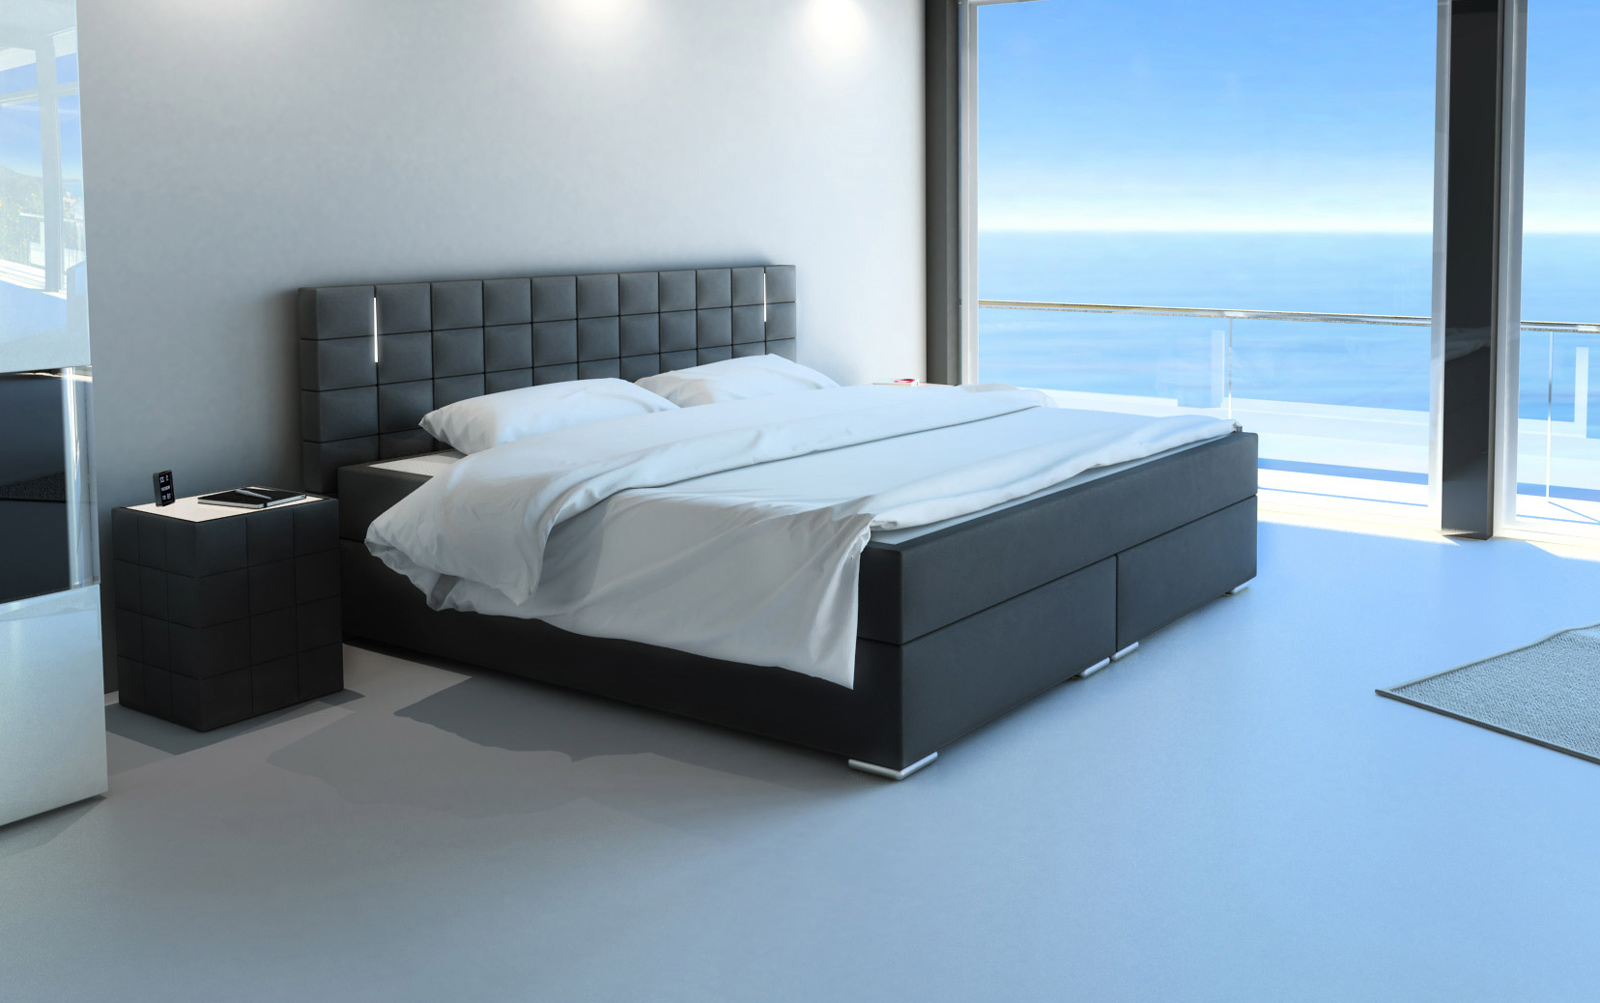 sam boxspringbett hotelbett stoff grau led 200 x 200 cm boston. Black Bedroom Furniture Sets. Home Design Ideas